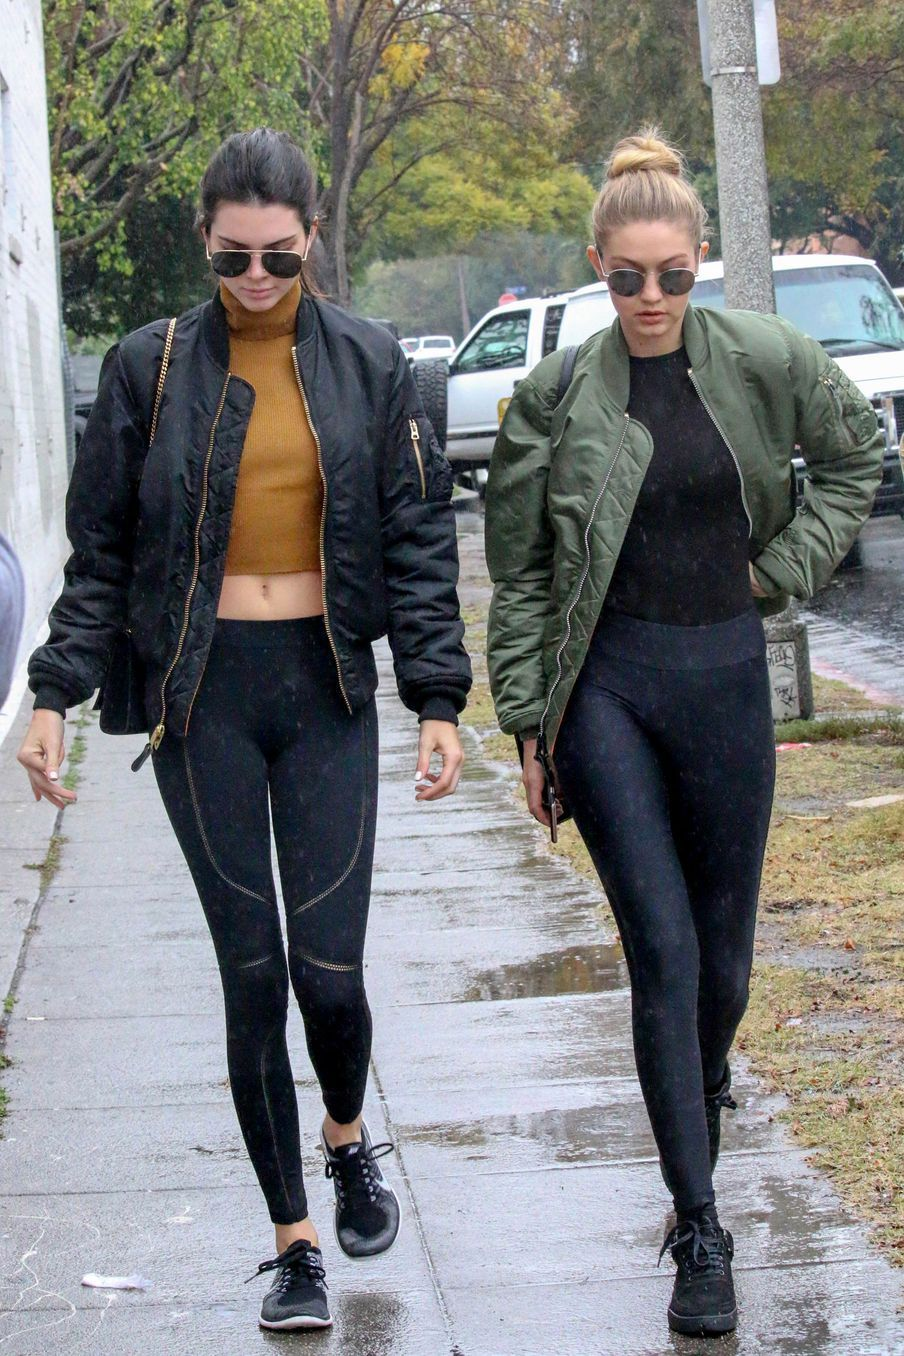 367ab67b3e2e5 15 Times Kendall Jenner and Gigi Hadid Looked Flawless in Gym ...